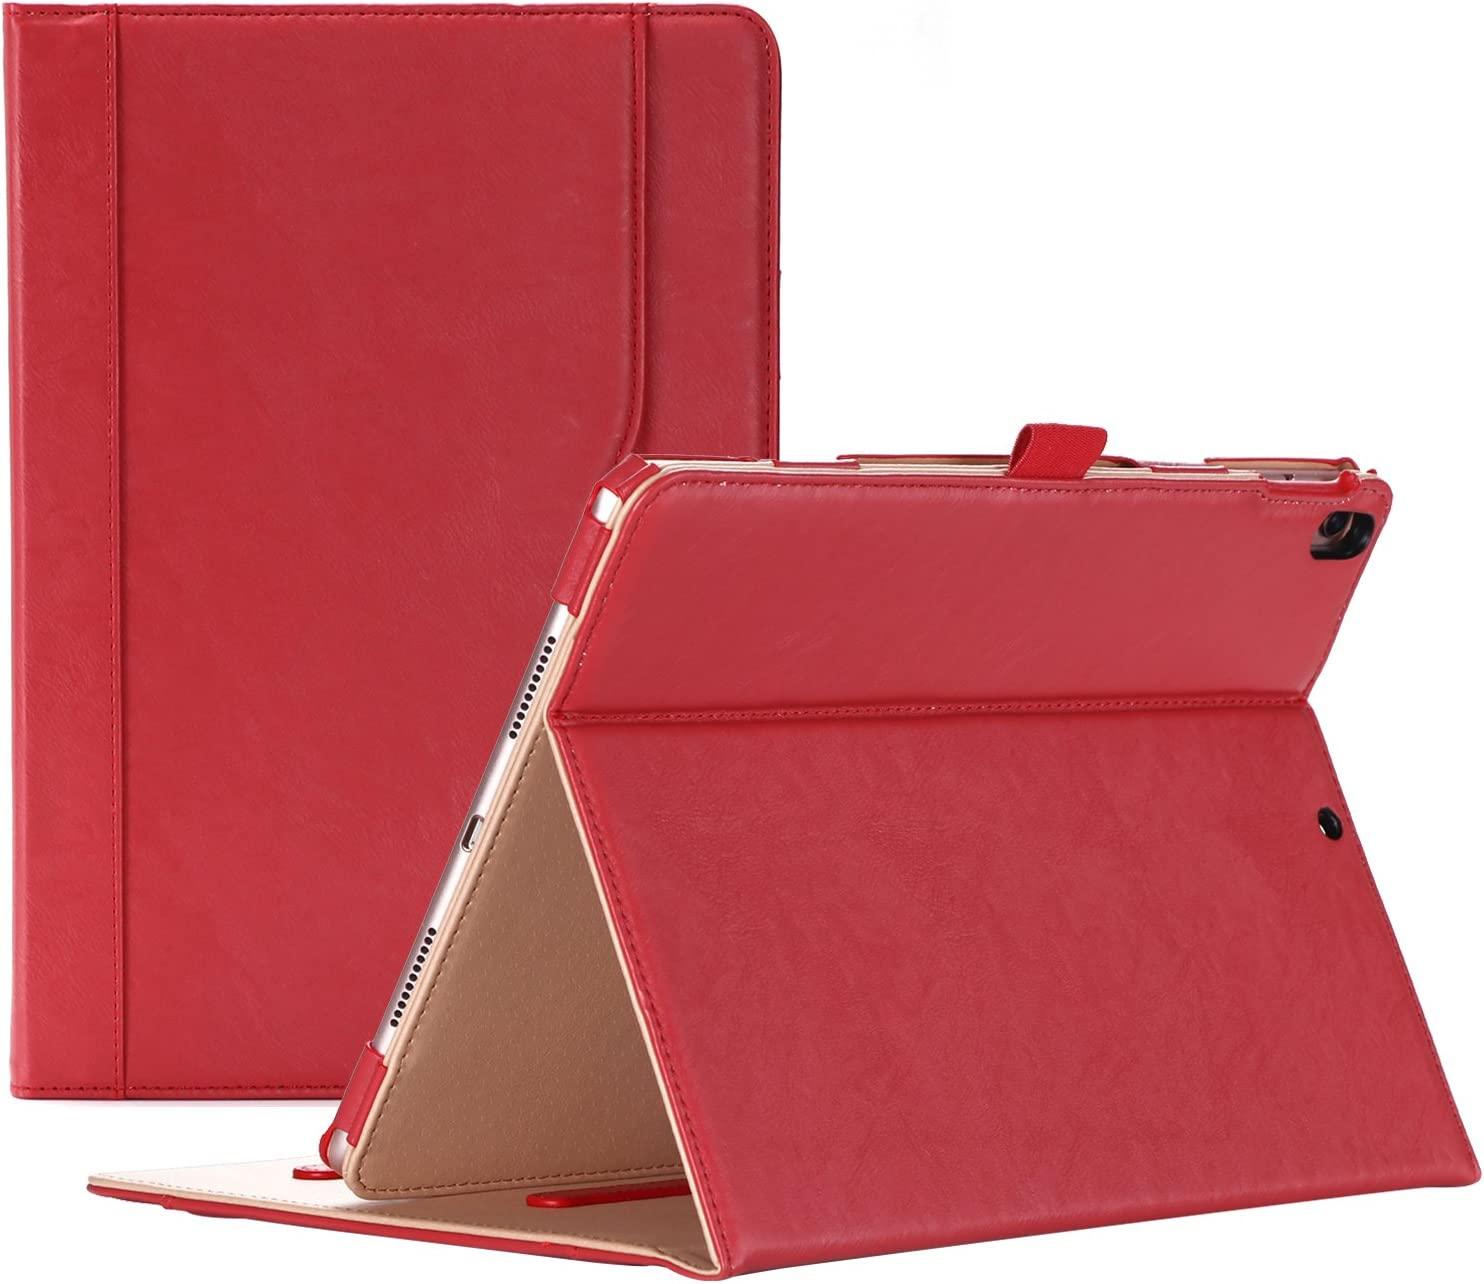 "ProCase iPad Air (3rd Gen) 10.5"" Case 2019, Vintage Stand Folio Case Cover for Apple iPad Air (3rd Gen) 10.5"" 2019 and iPad Pro 10.5 2017, Multiple Viewing Angles, with Apple Pencil Holder - Red"